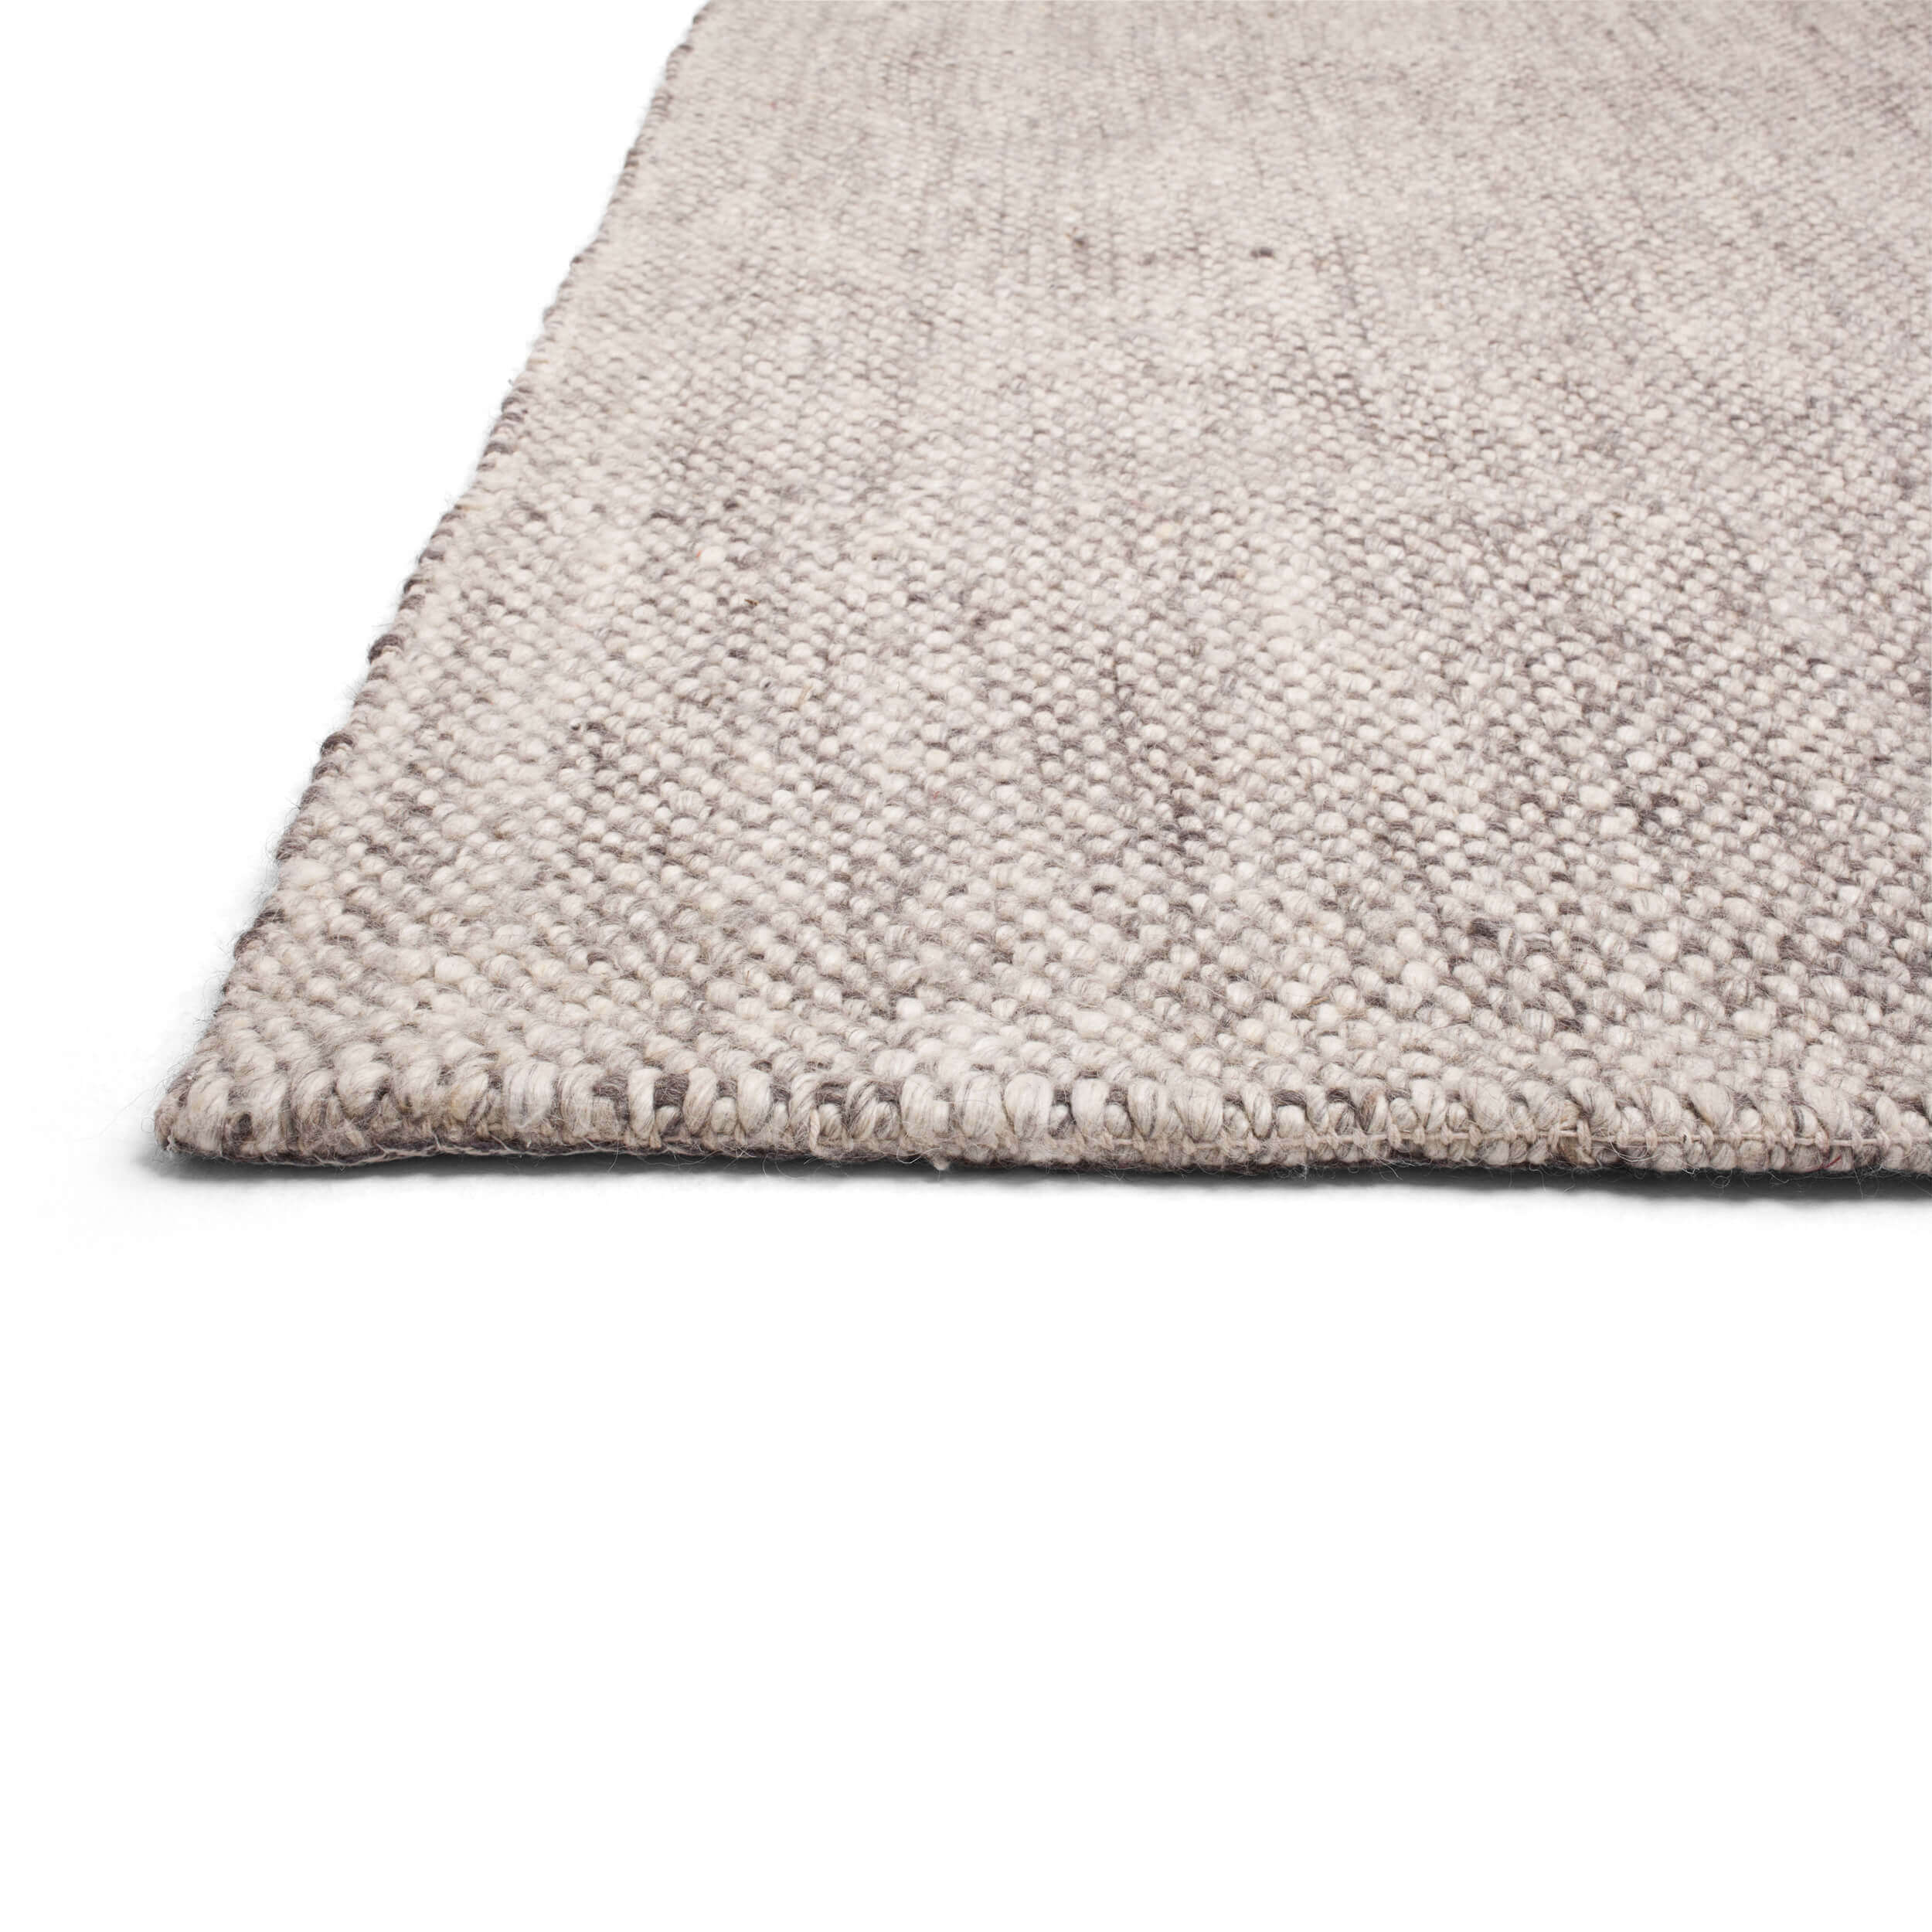 6x9 Area Rugs Cotton Or Wool 6x9 Rugs Eq3